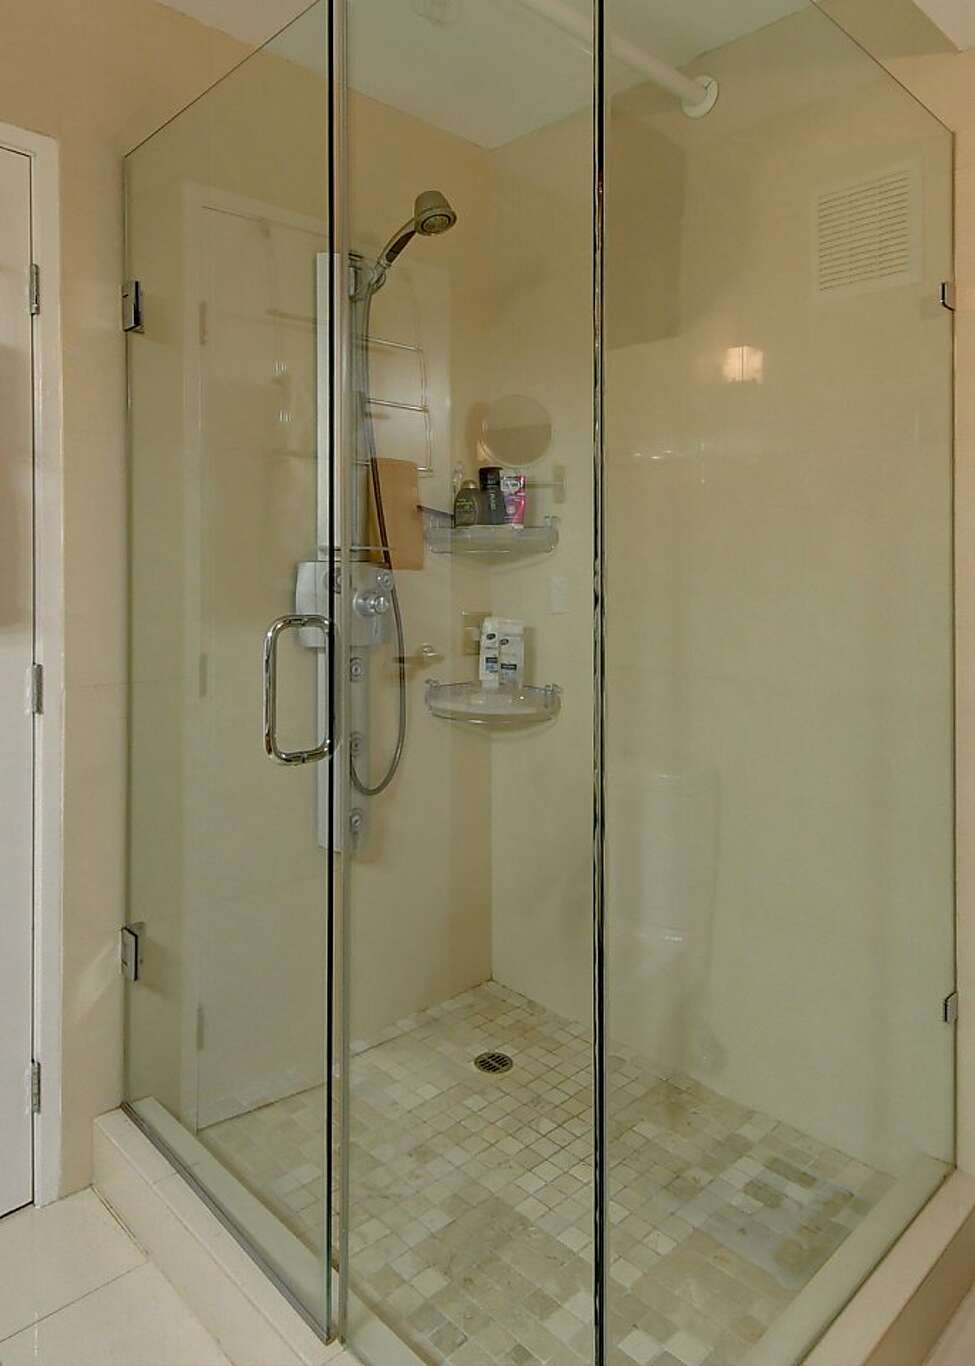 Walk-in showers. Bathtubs are among the most treacherous of household hazards, especially as we get older.